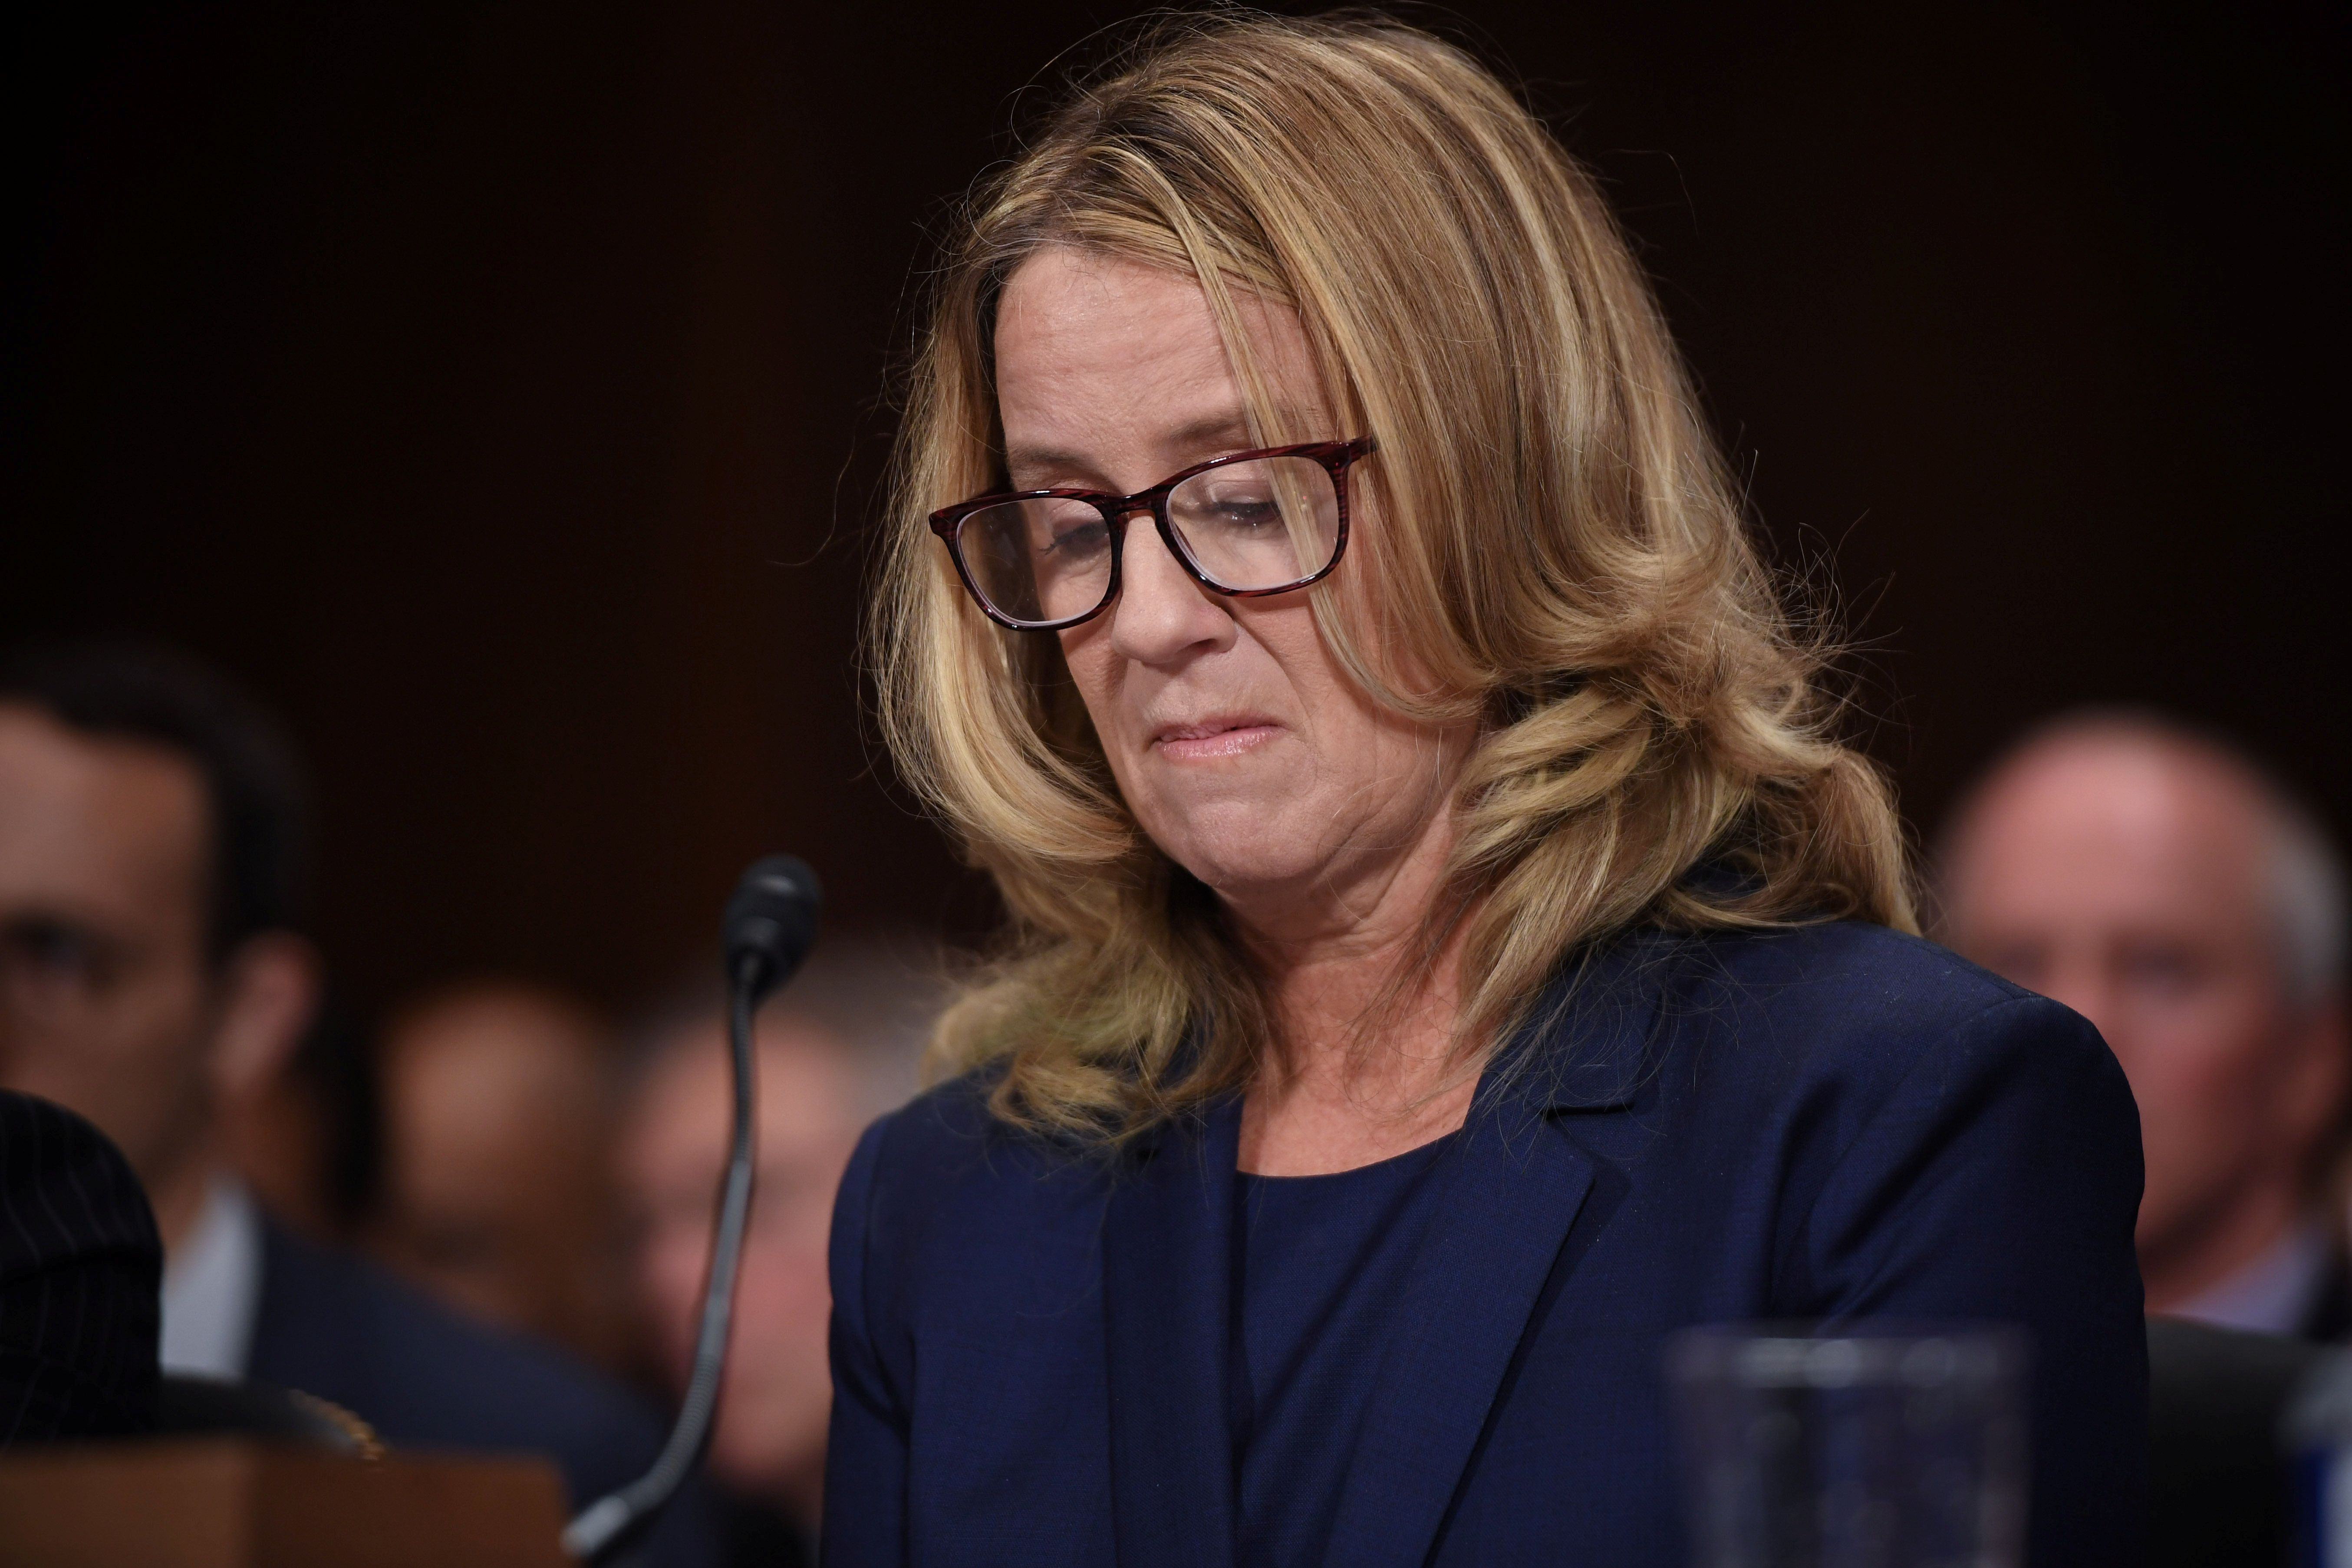 Christine Blasey Ford testifies in front of the US Senate Judiciary Committee confirmation hearing on Capitol Hill in Washington, DC, U.S., September 27, 2018. Saul Loeb/Pool via REUTERS